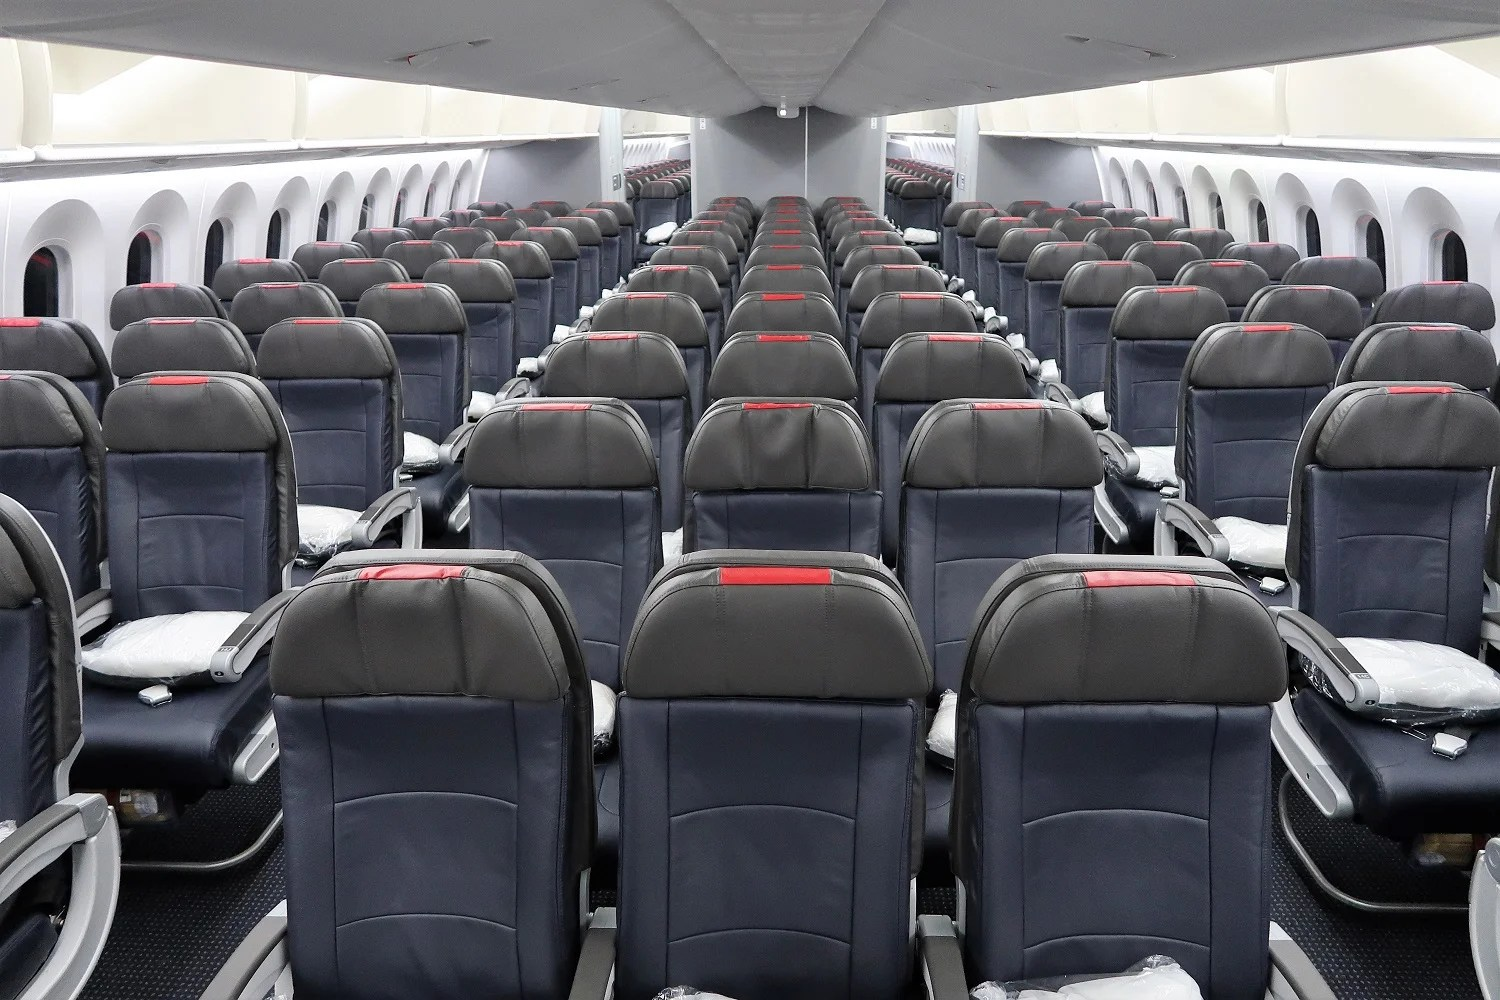 11 Times It's Better to Book American Award Flights Through British Airways